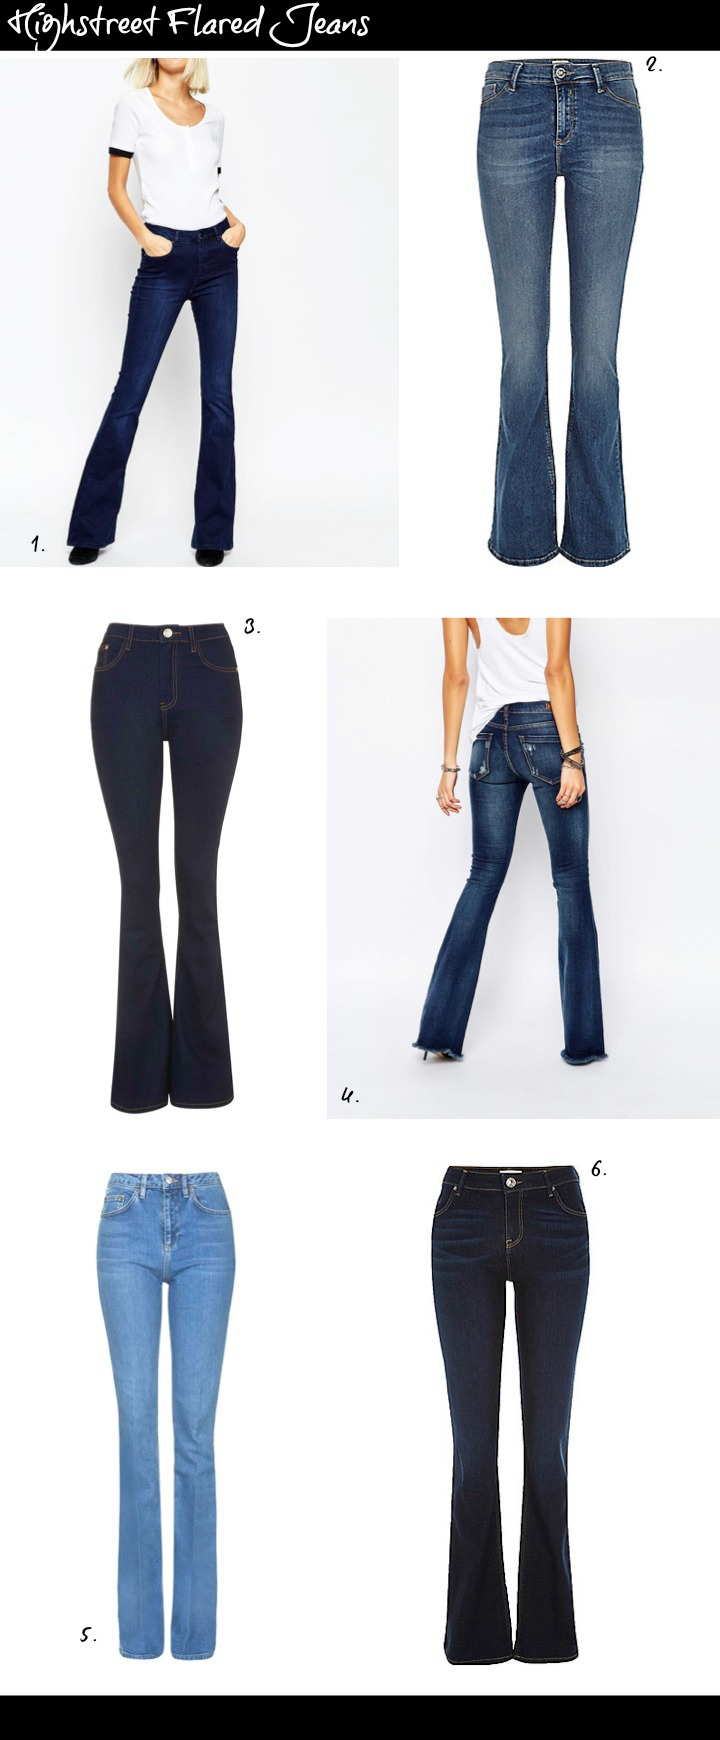 Best Flared Jeans From the Highstreet